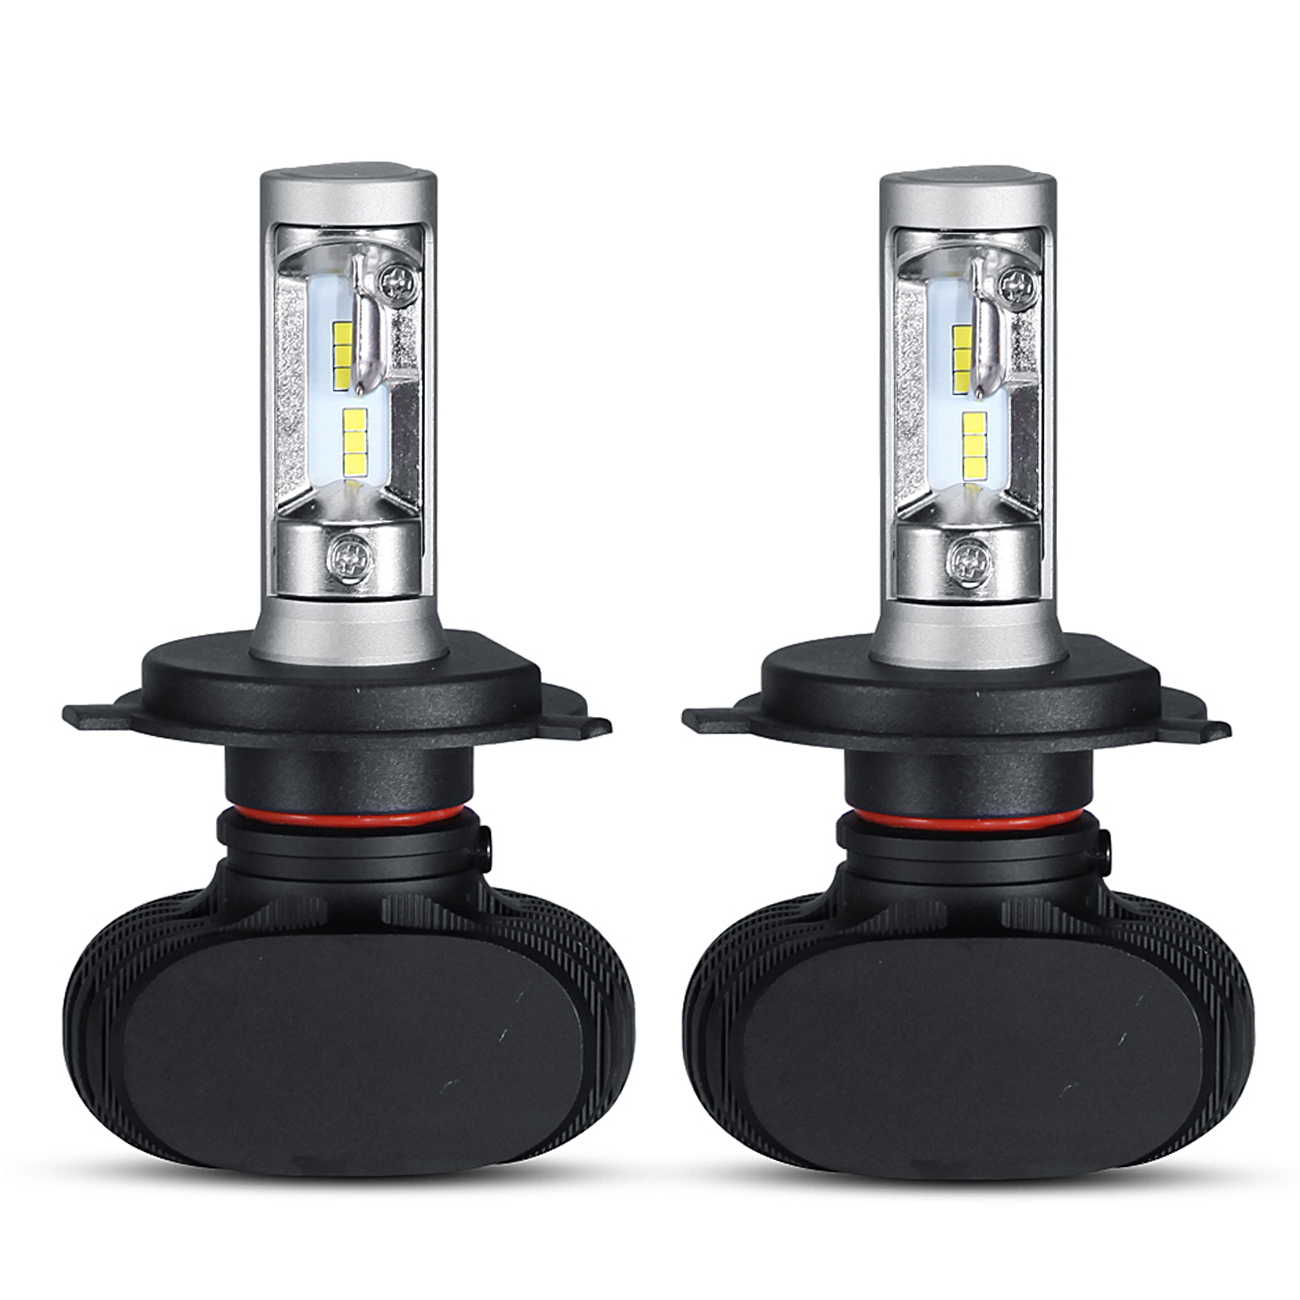 Oslamp 2pcs H4 HB2 9003 LED Headlight Bulbs for Cars Conv...